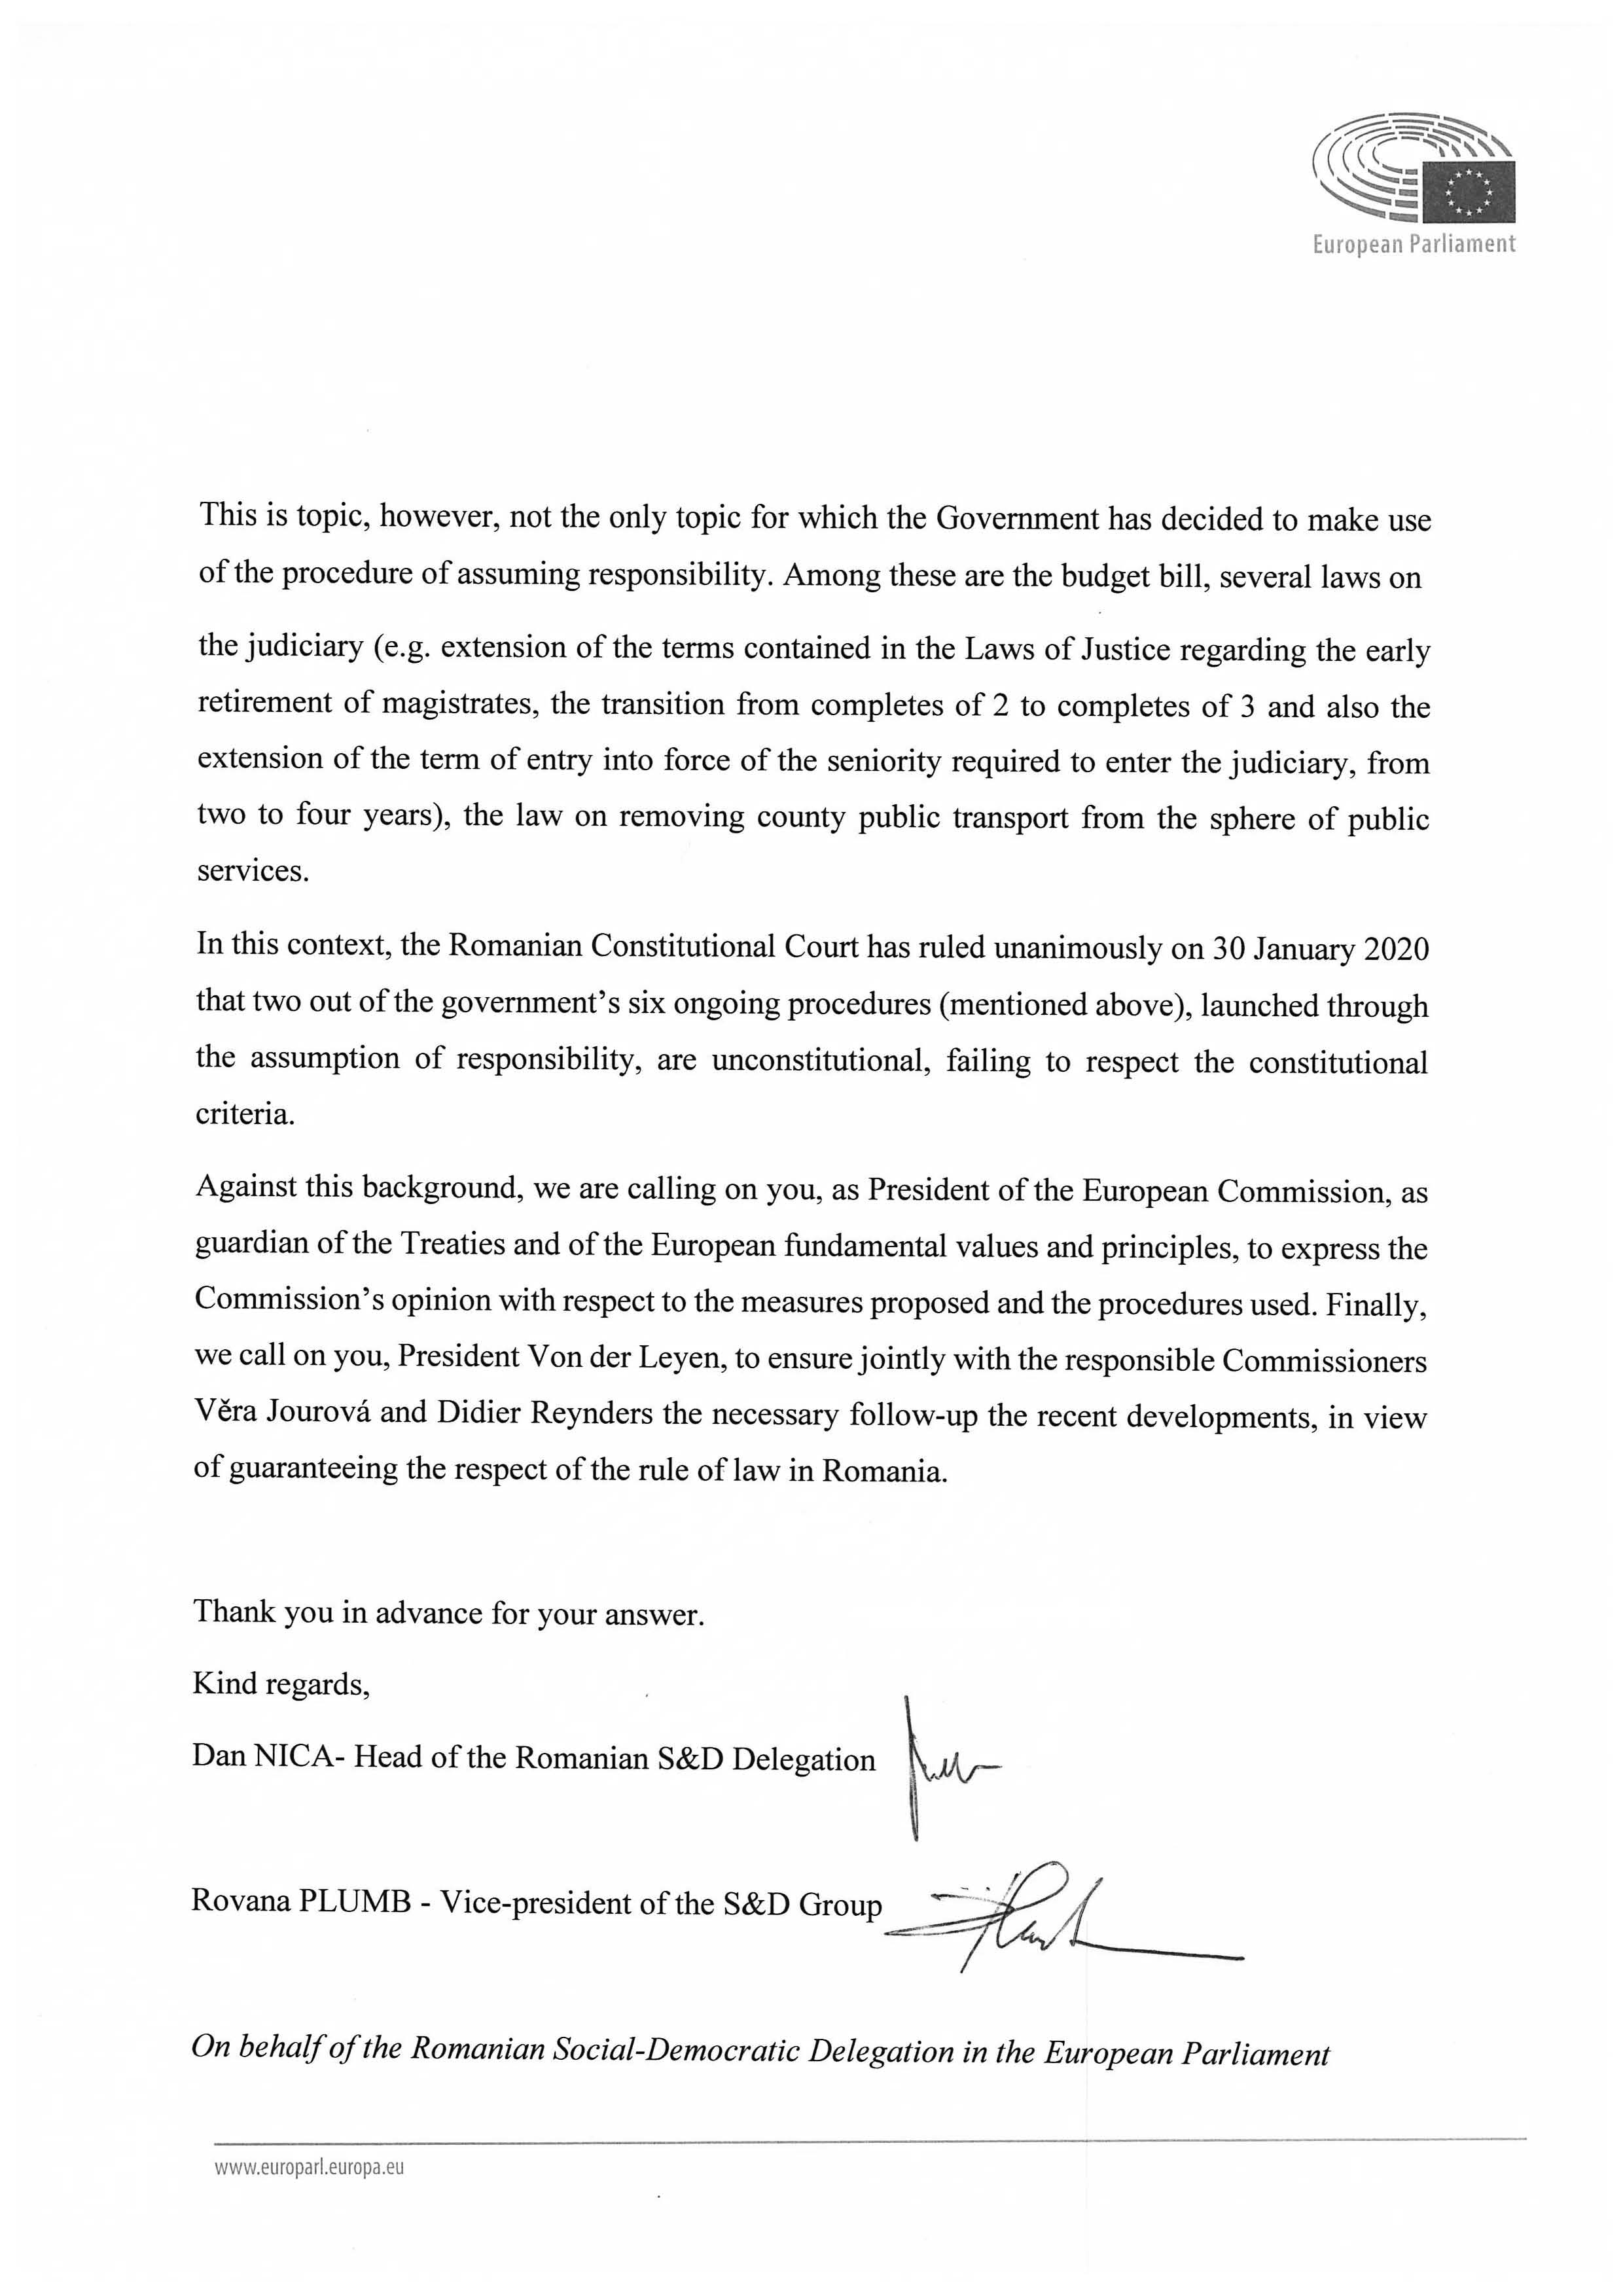 Letter President Von der Leyen Rule of Law Page 2